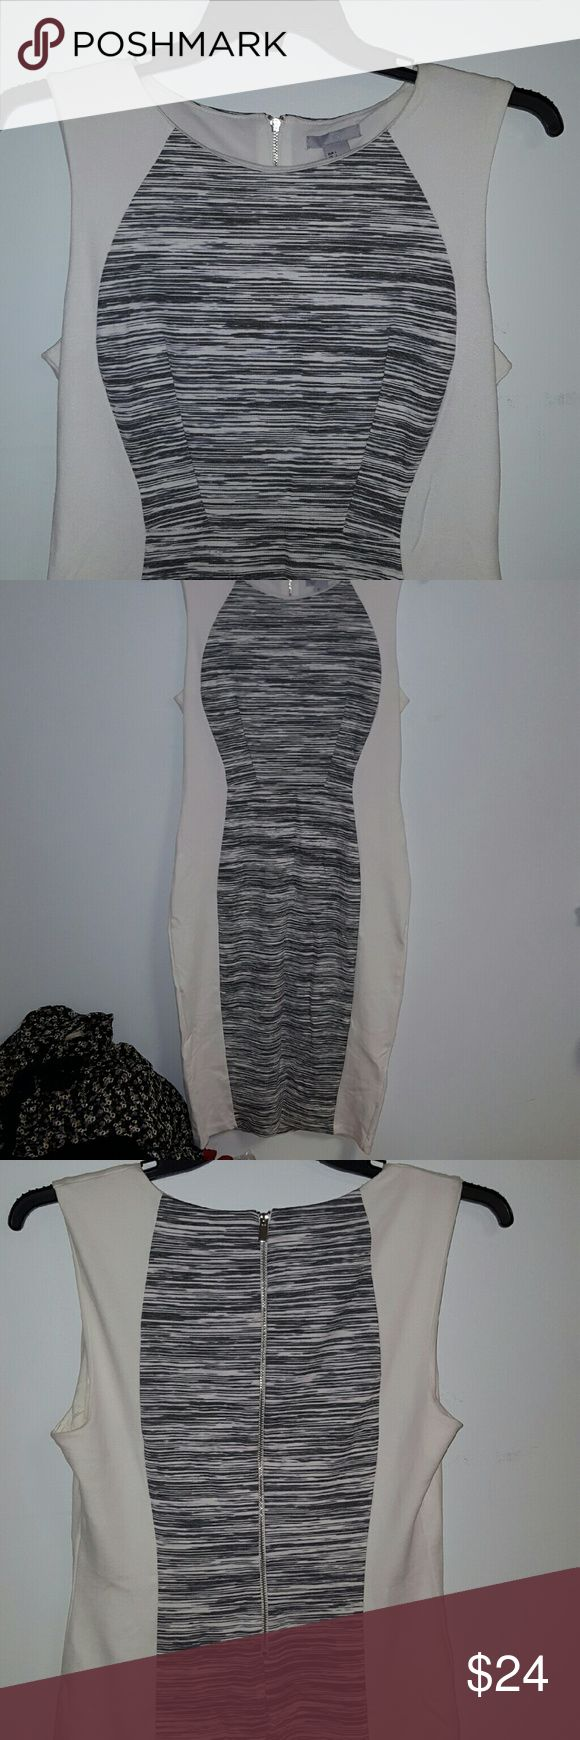 H&M dress size large Office wearable. Silver zipper in the back. Fits like a pencil skirt would. NWT.  Slightly stretchy, but not sheer at all. Has a slimming effect. Would look great with or without a blazer. H&M Dresses Midi